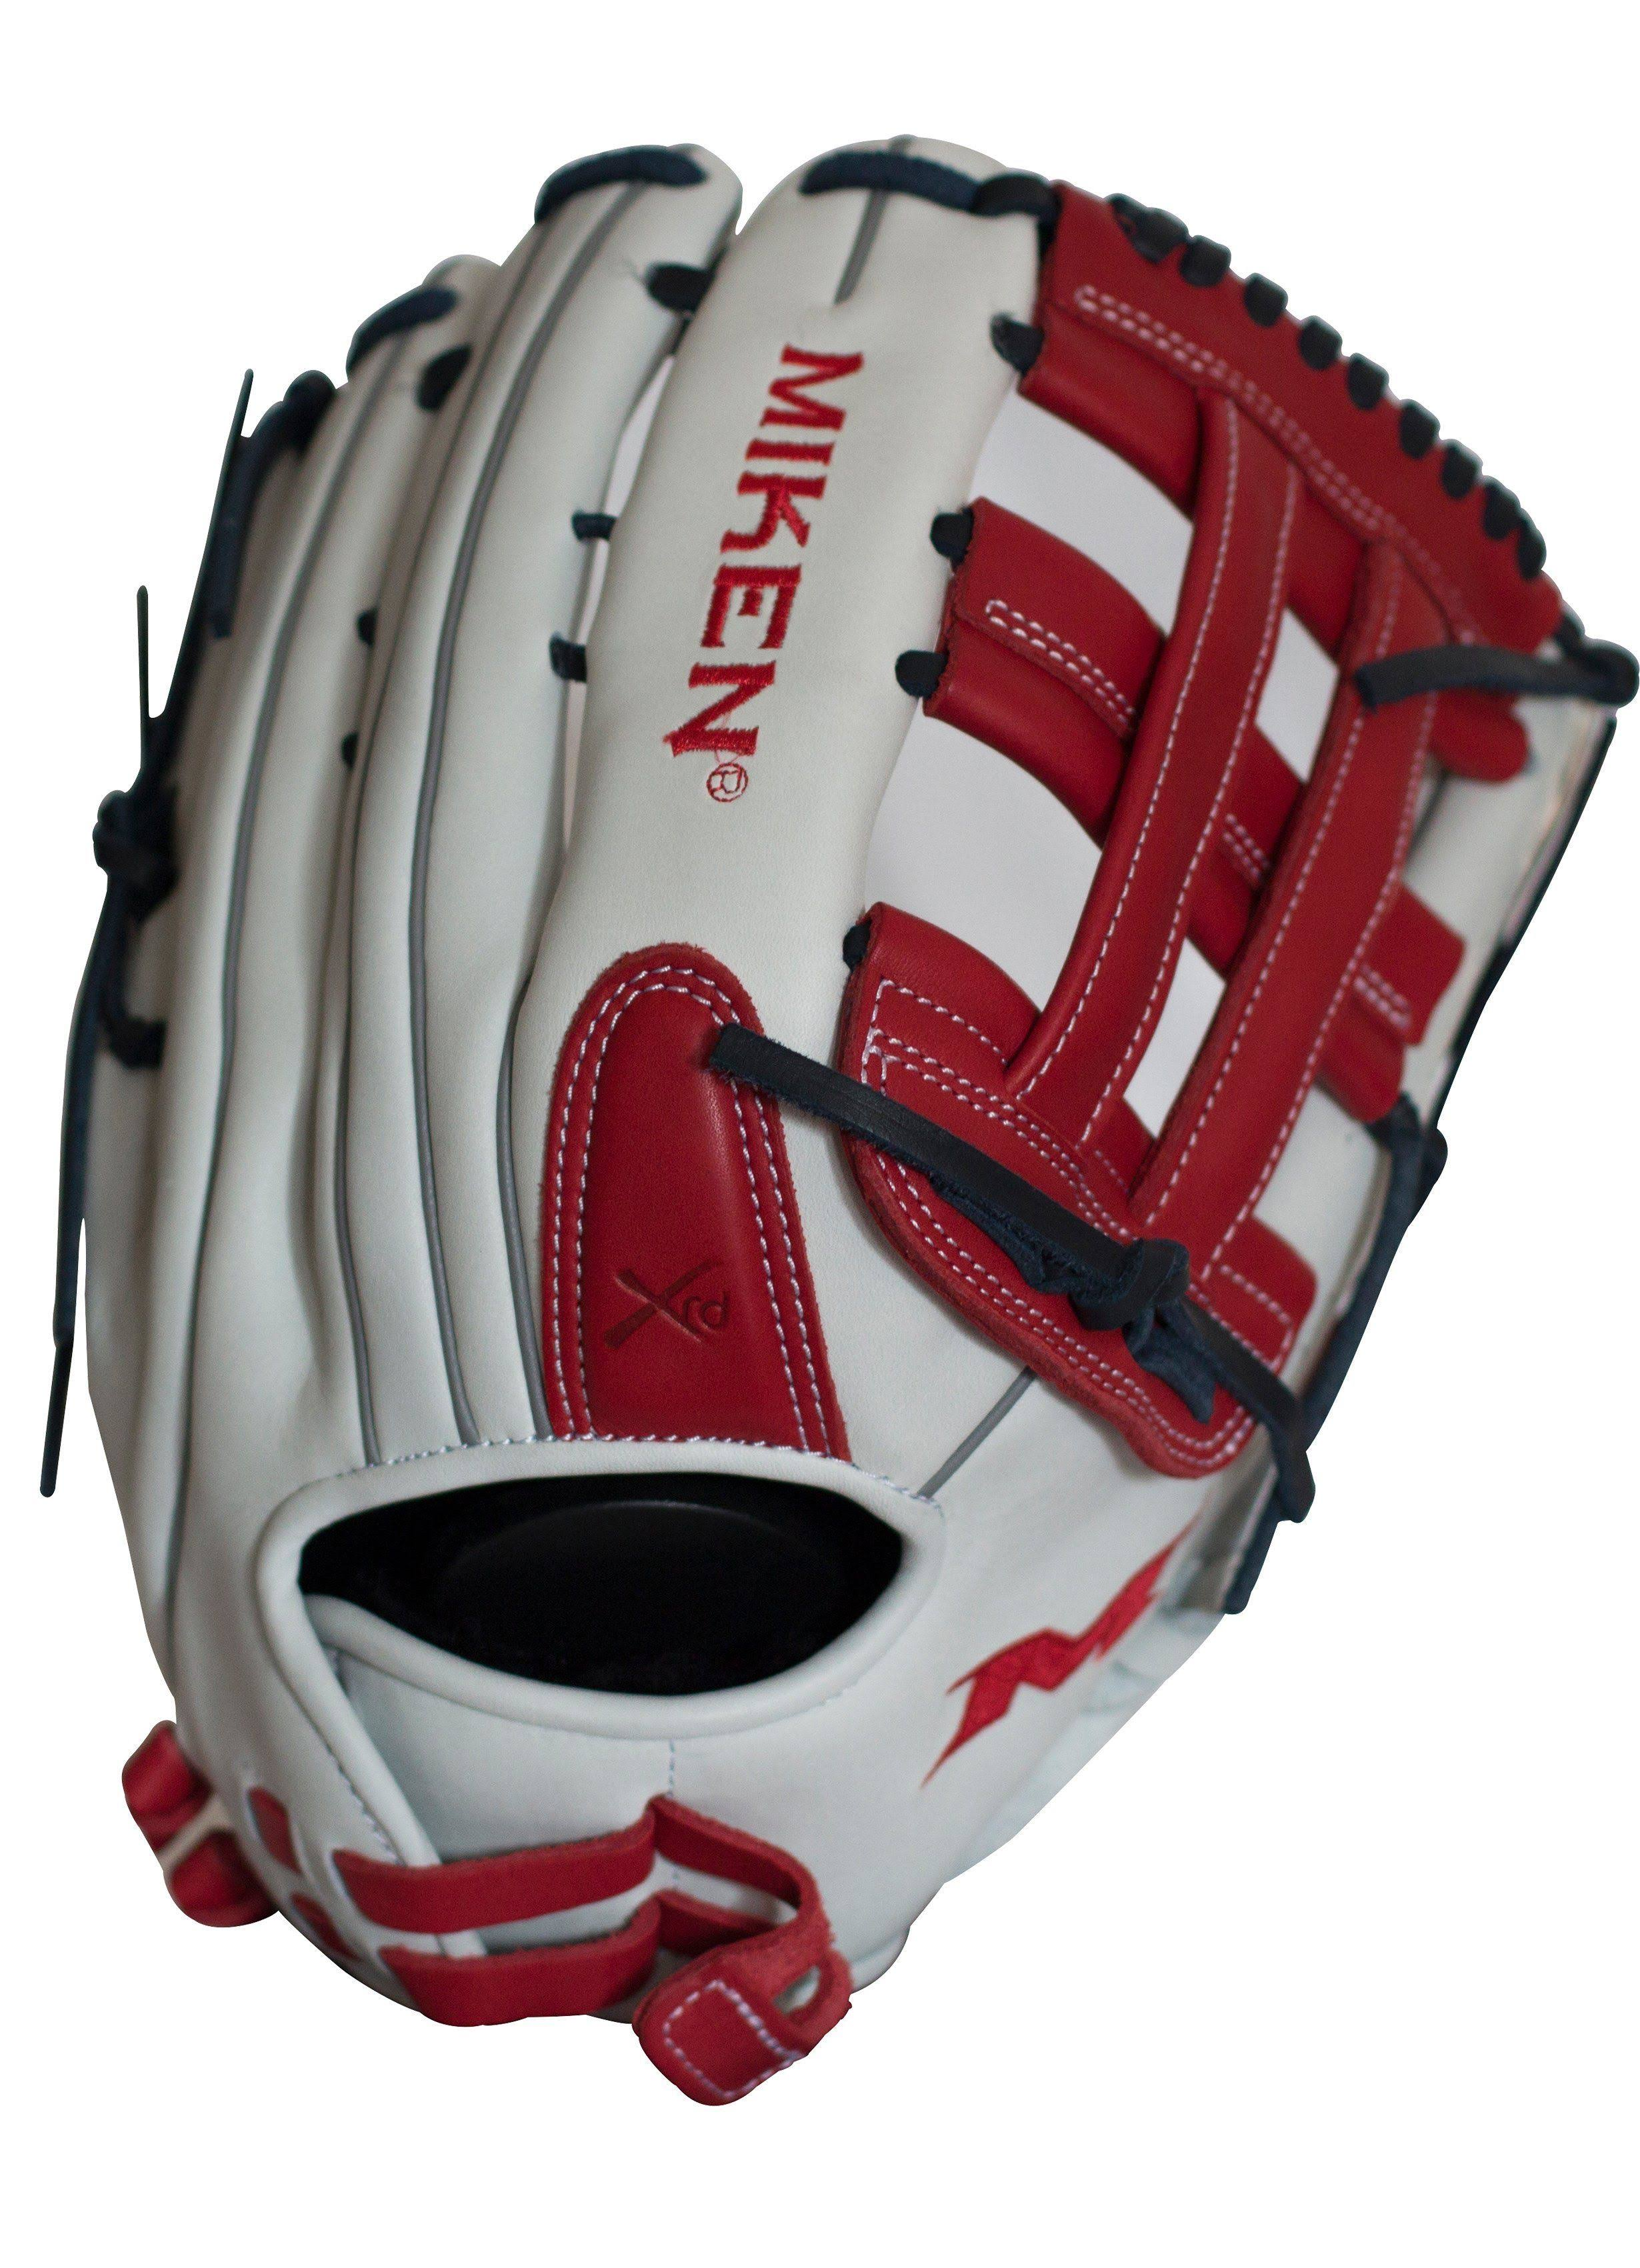 miken-pro-series-14-in-slowpitch-softball-glove-right-hand-throw PRO140-WSN-RightHandThrow  658925039898 <span>Miken Pro Series 14 slow pitch softball glove features soft full-grain